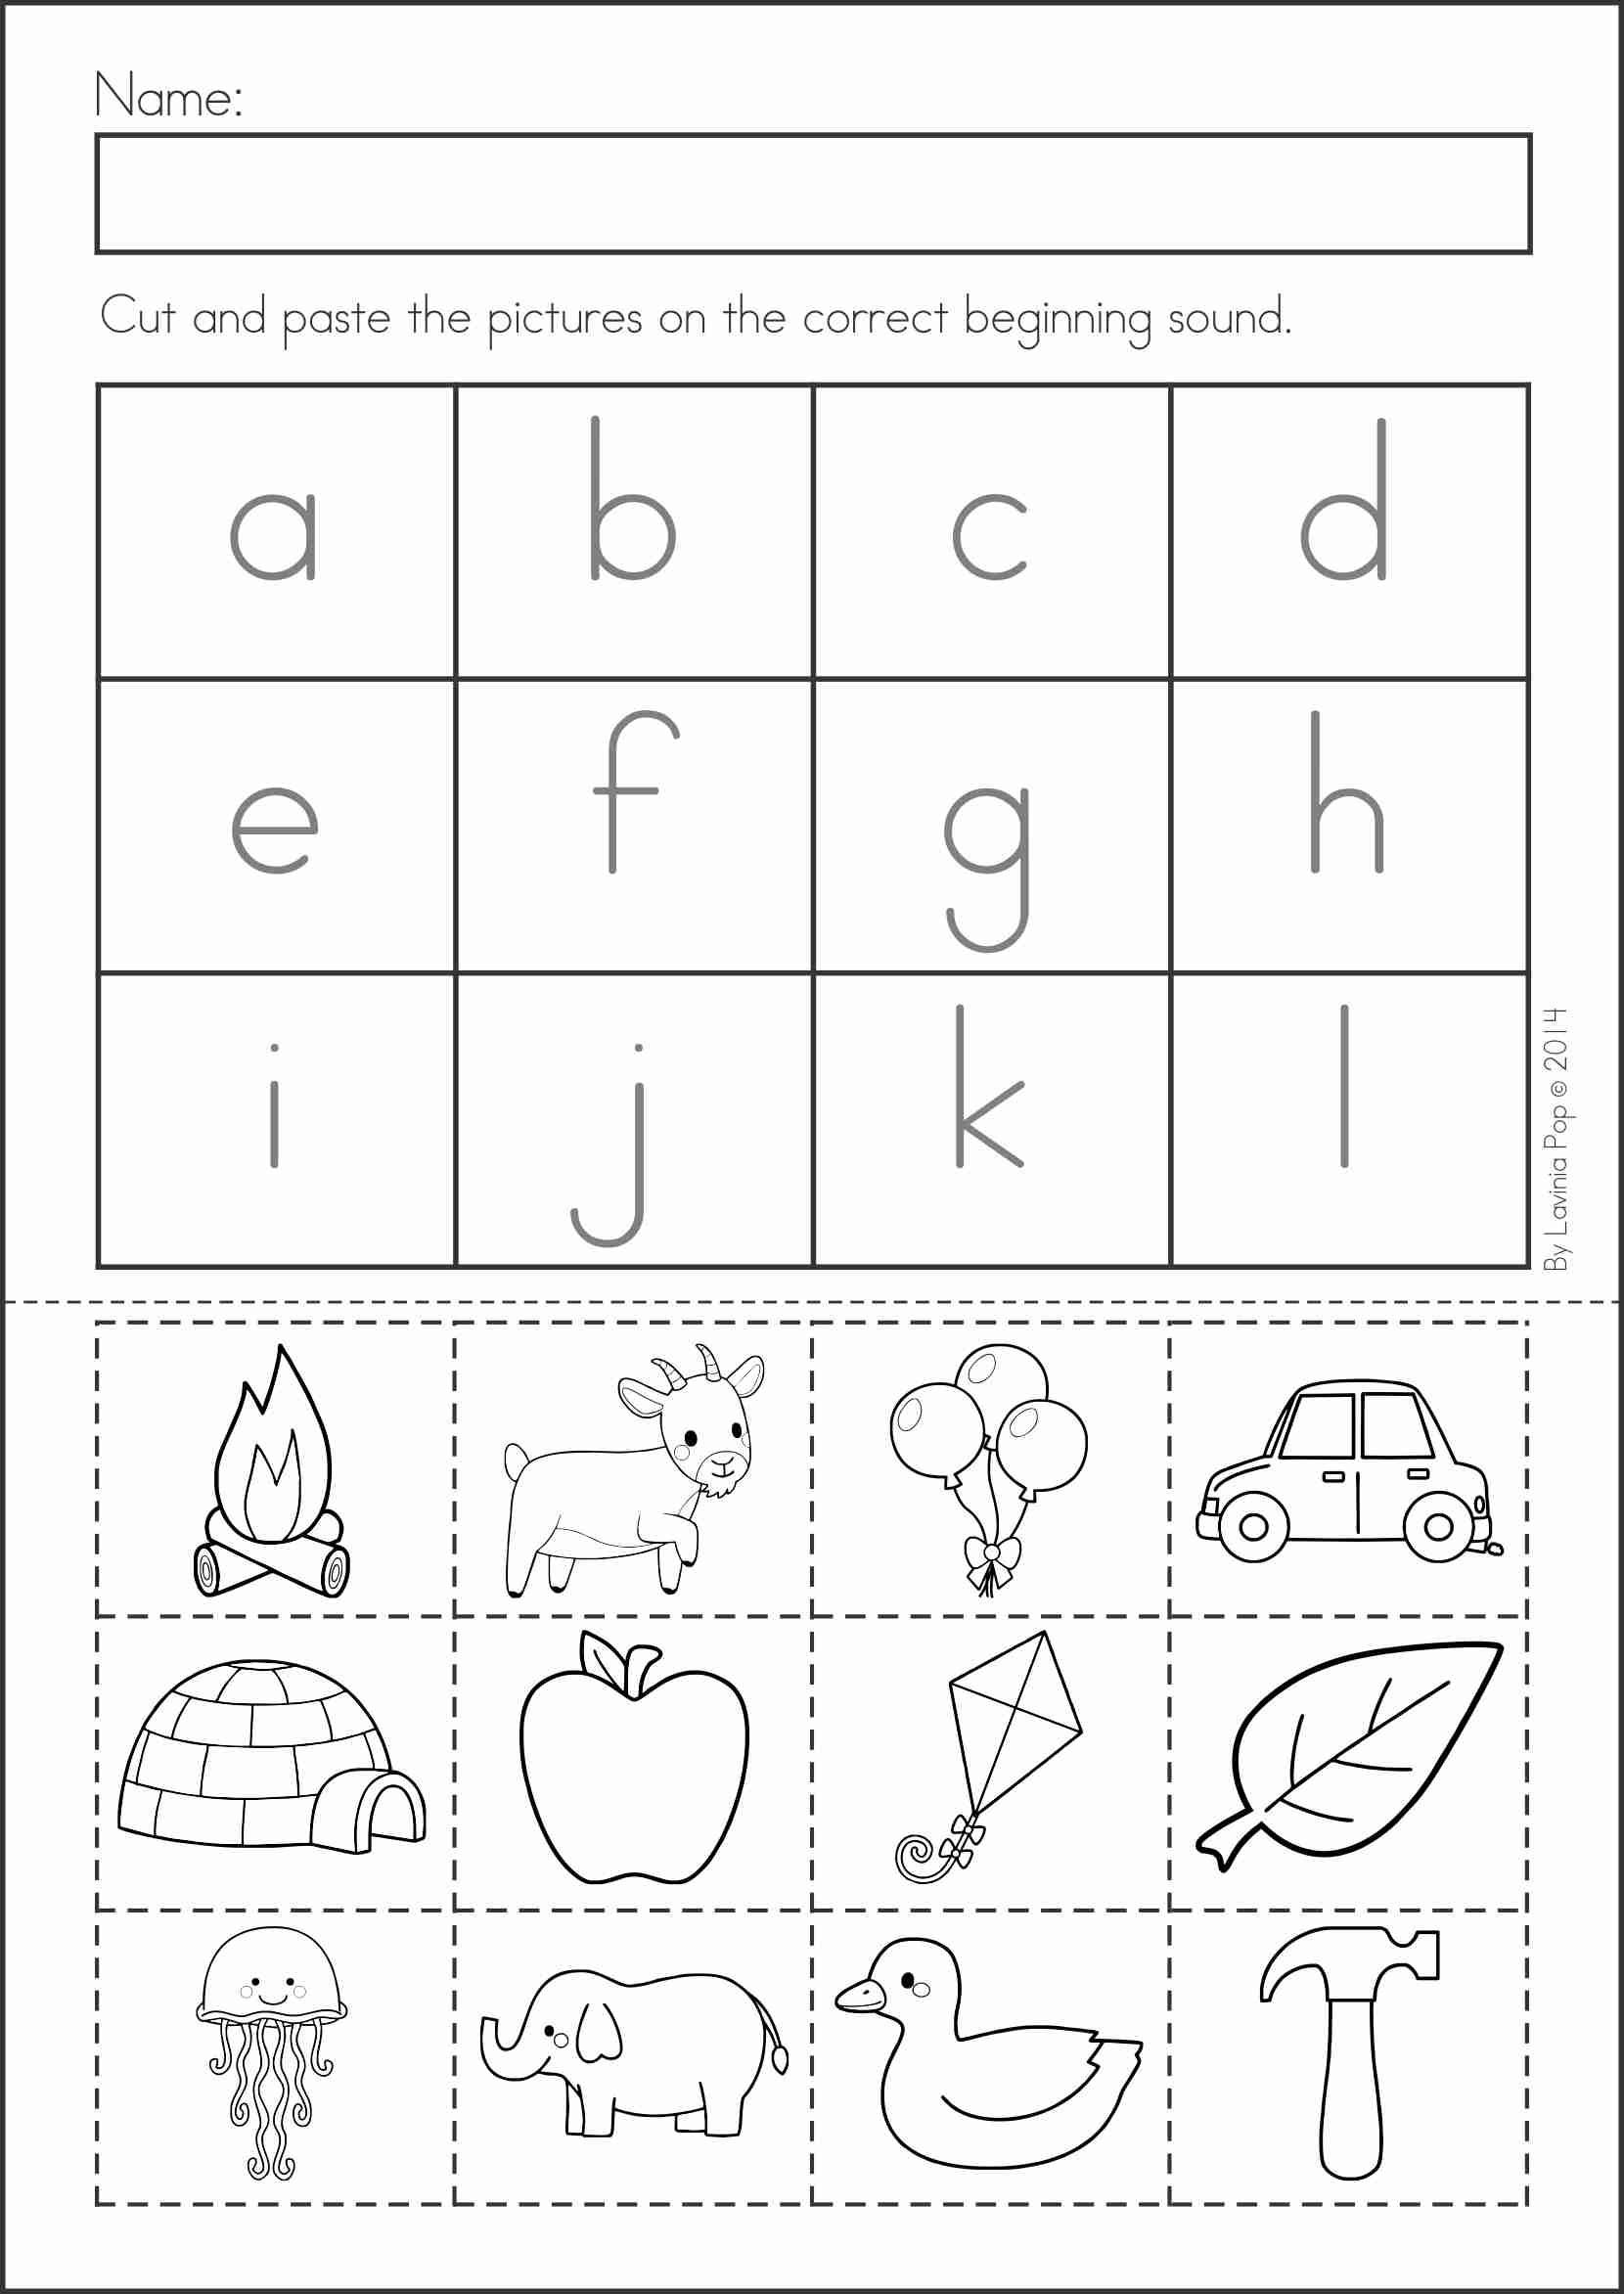 Worksheet Kindergarten Beginning Sounds summer review literacy worksheets math and kindergarten activities 104 pages a page from